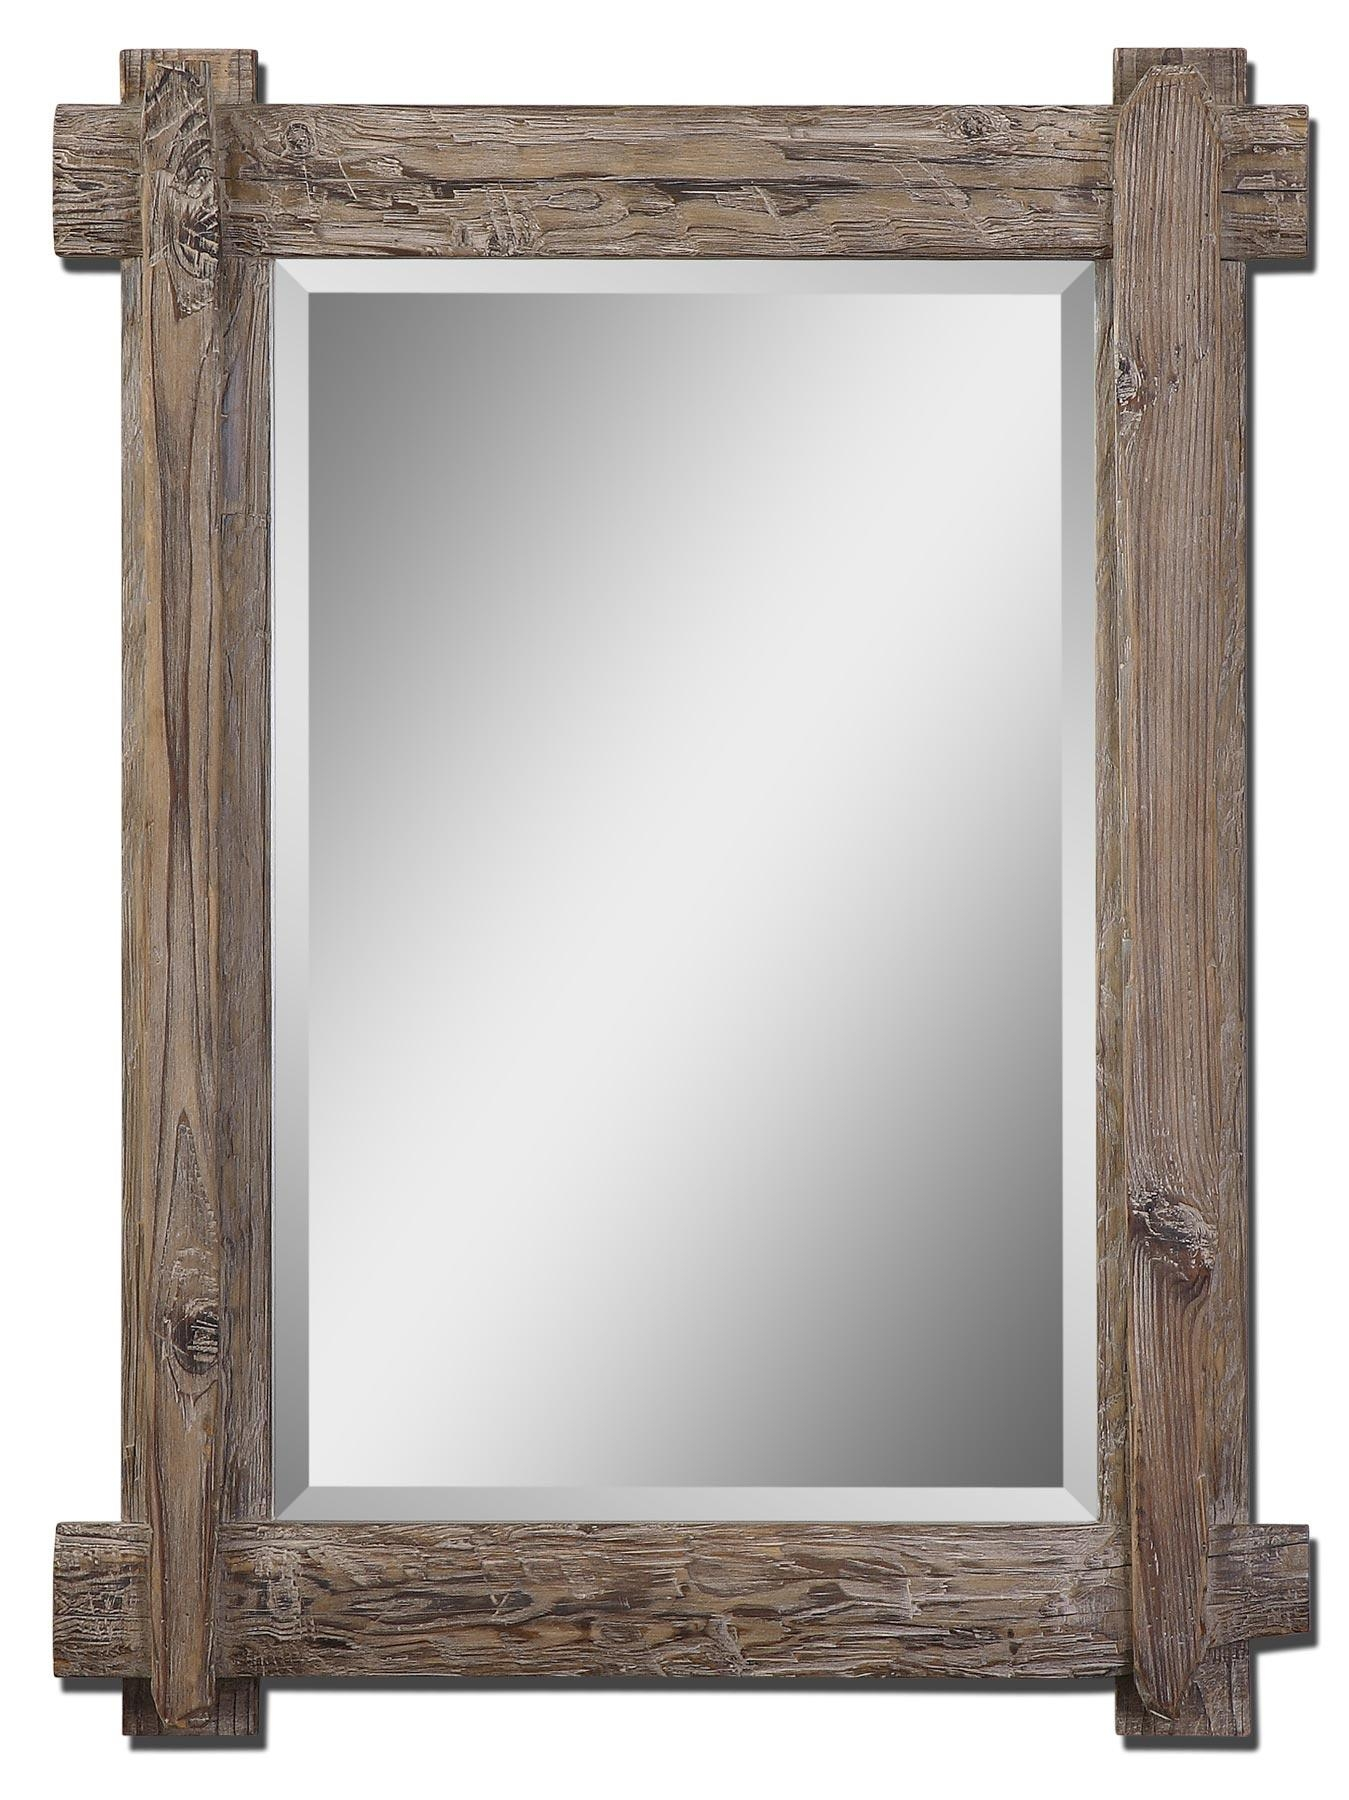 Wood Framed Mirrors: Sleek And Stylish – In Decors Regarding Natural Wood Framed Mirrors (Image 17 of 20)